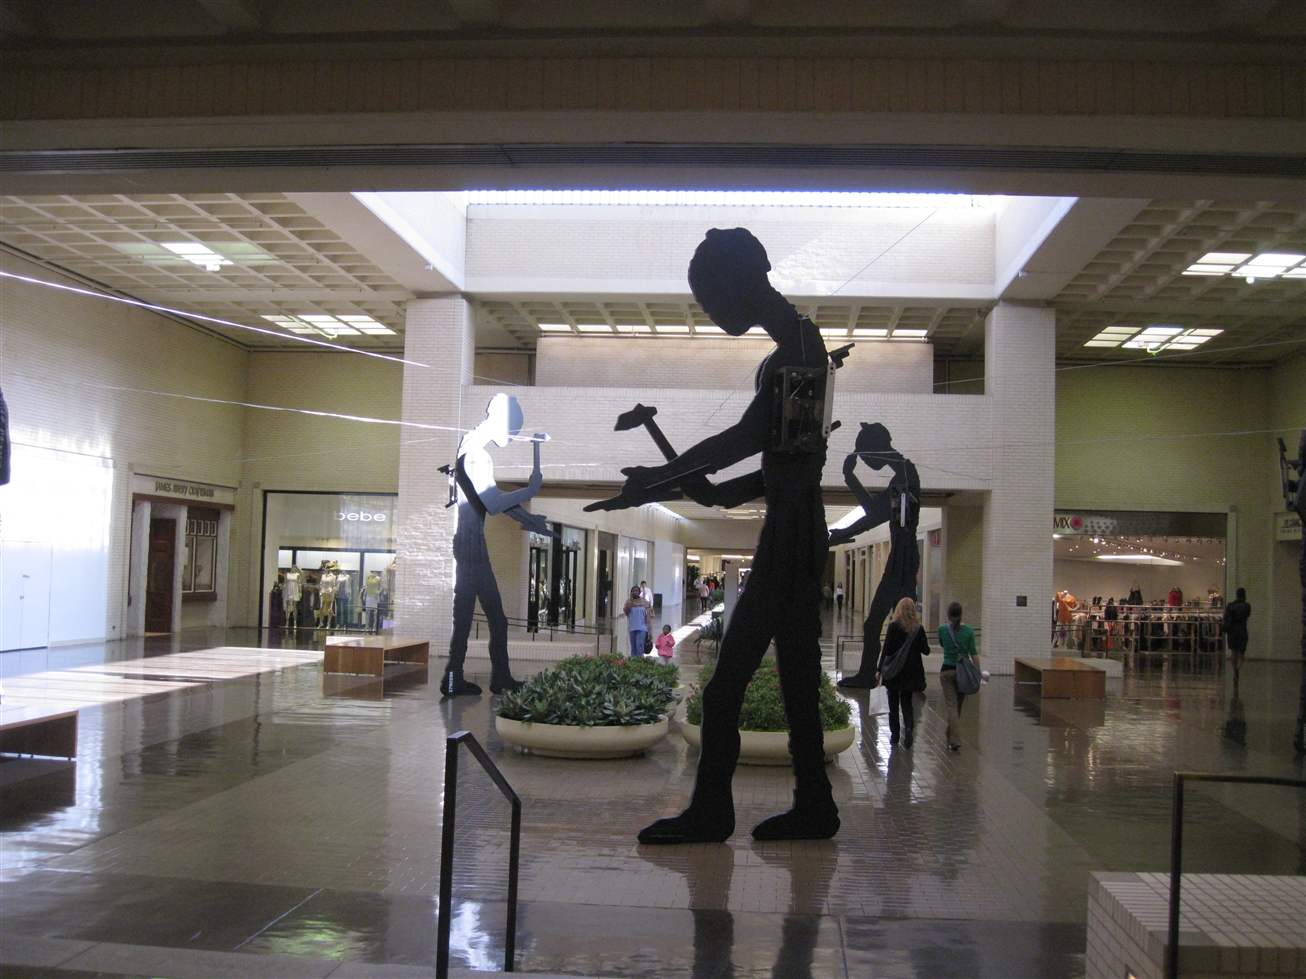 Northpark Center art in Dallas, TX